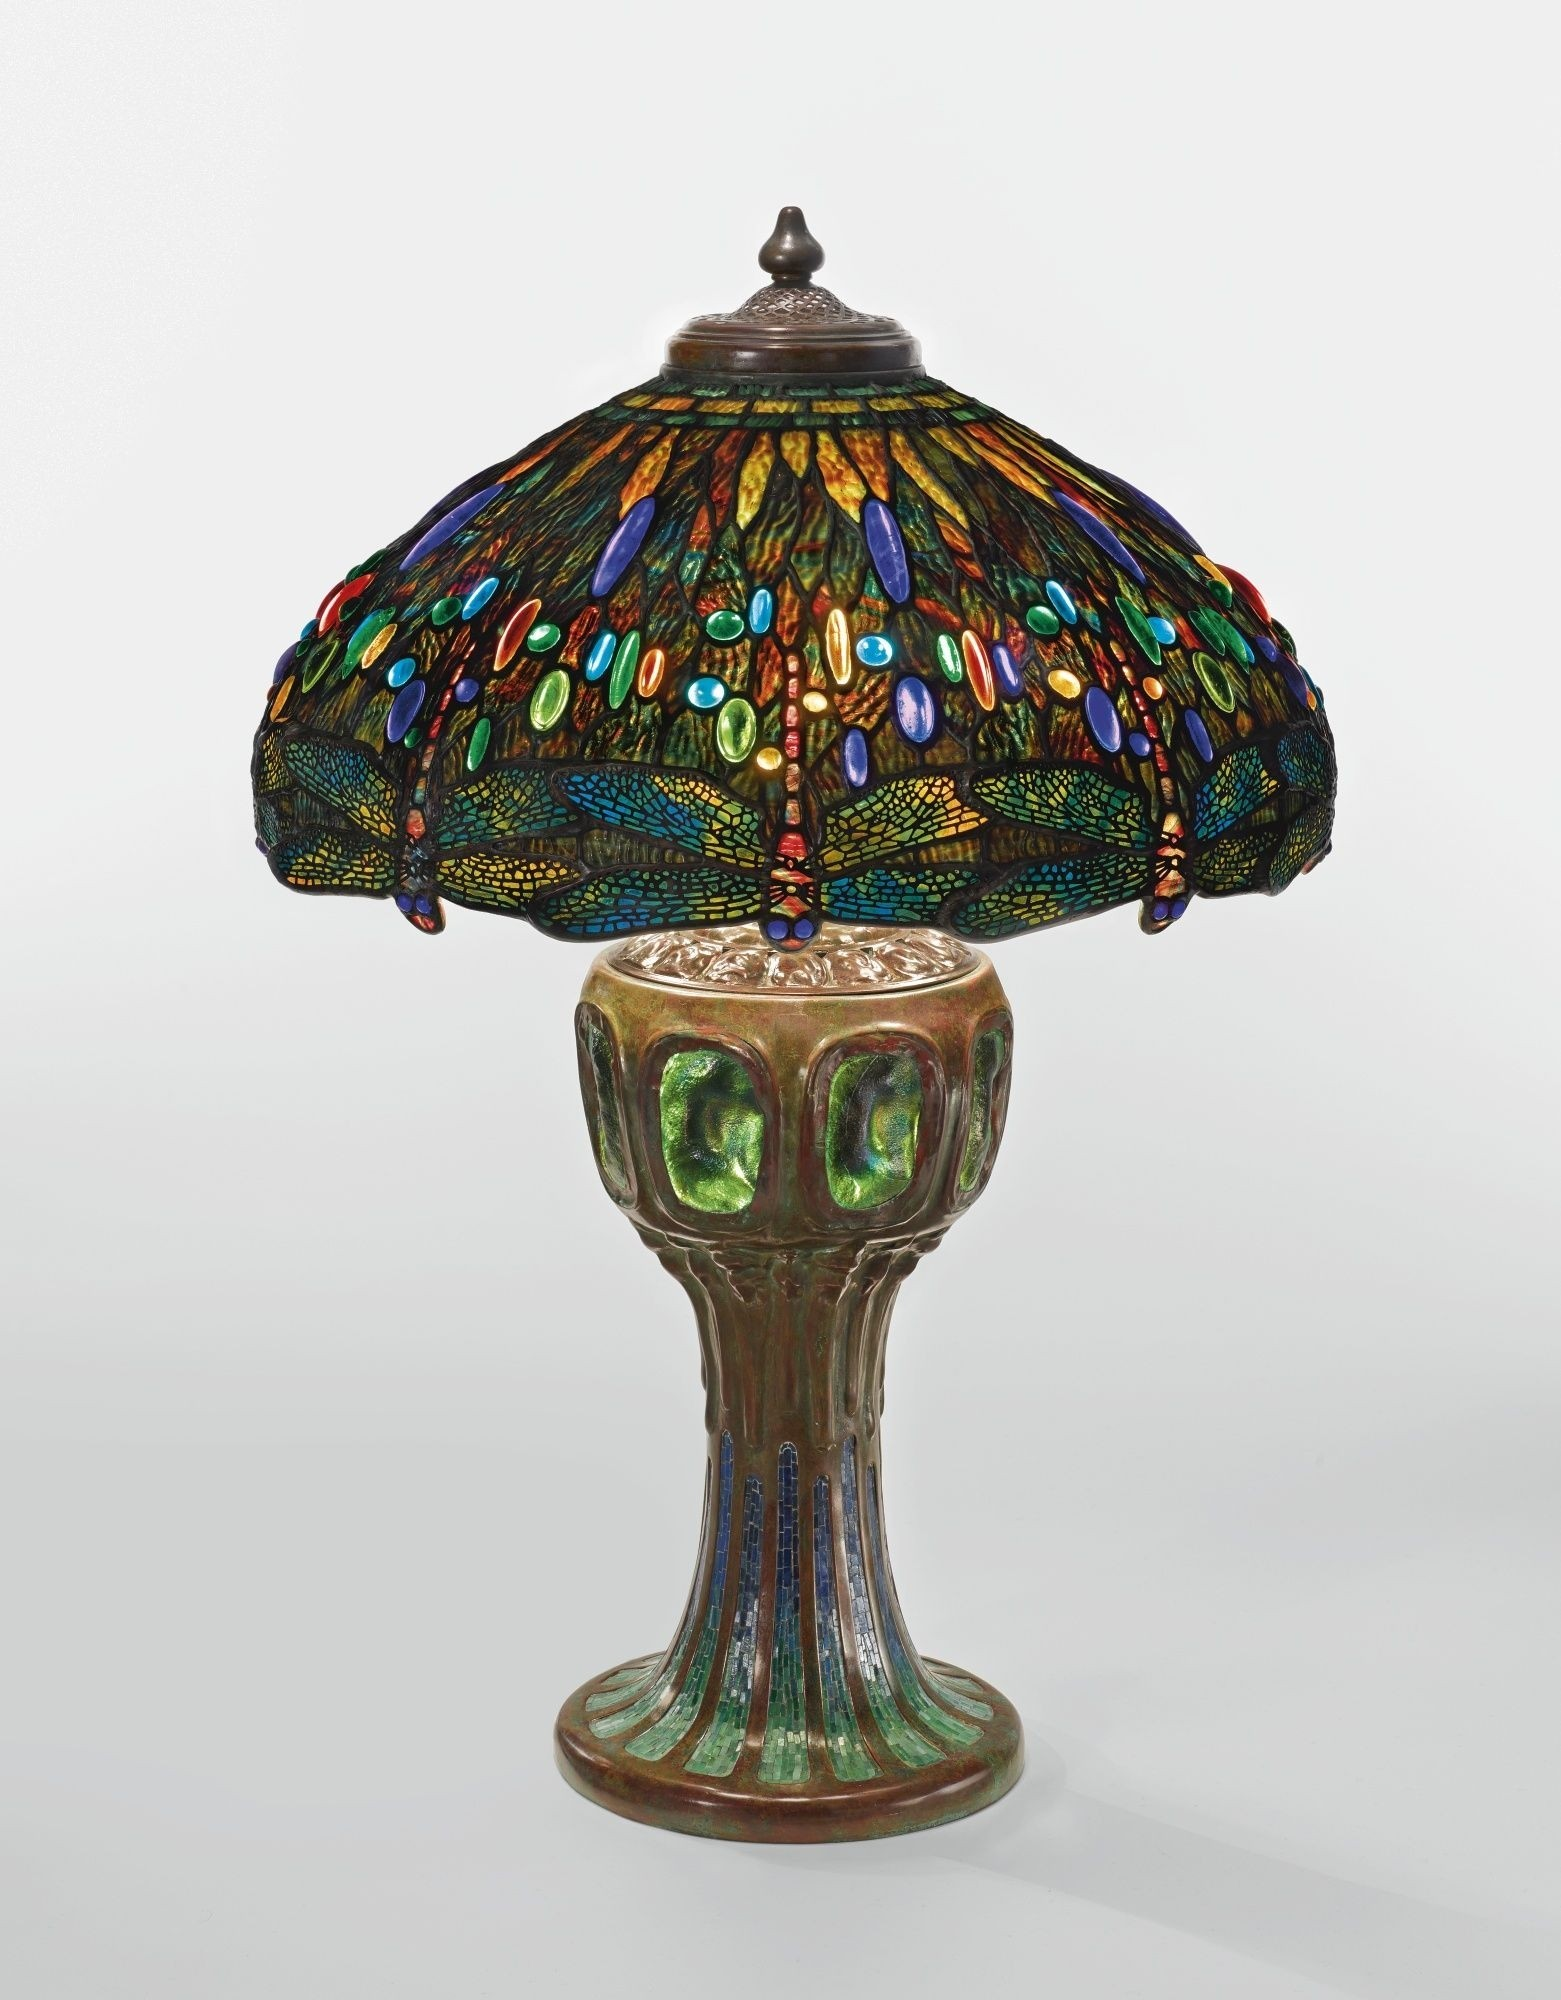 Superieur Dragonfly Tiffany Lamp Stained Glass Table Lamp 6